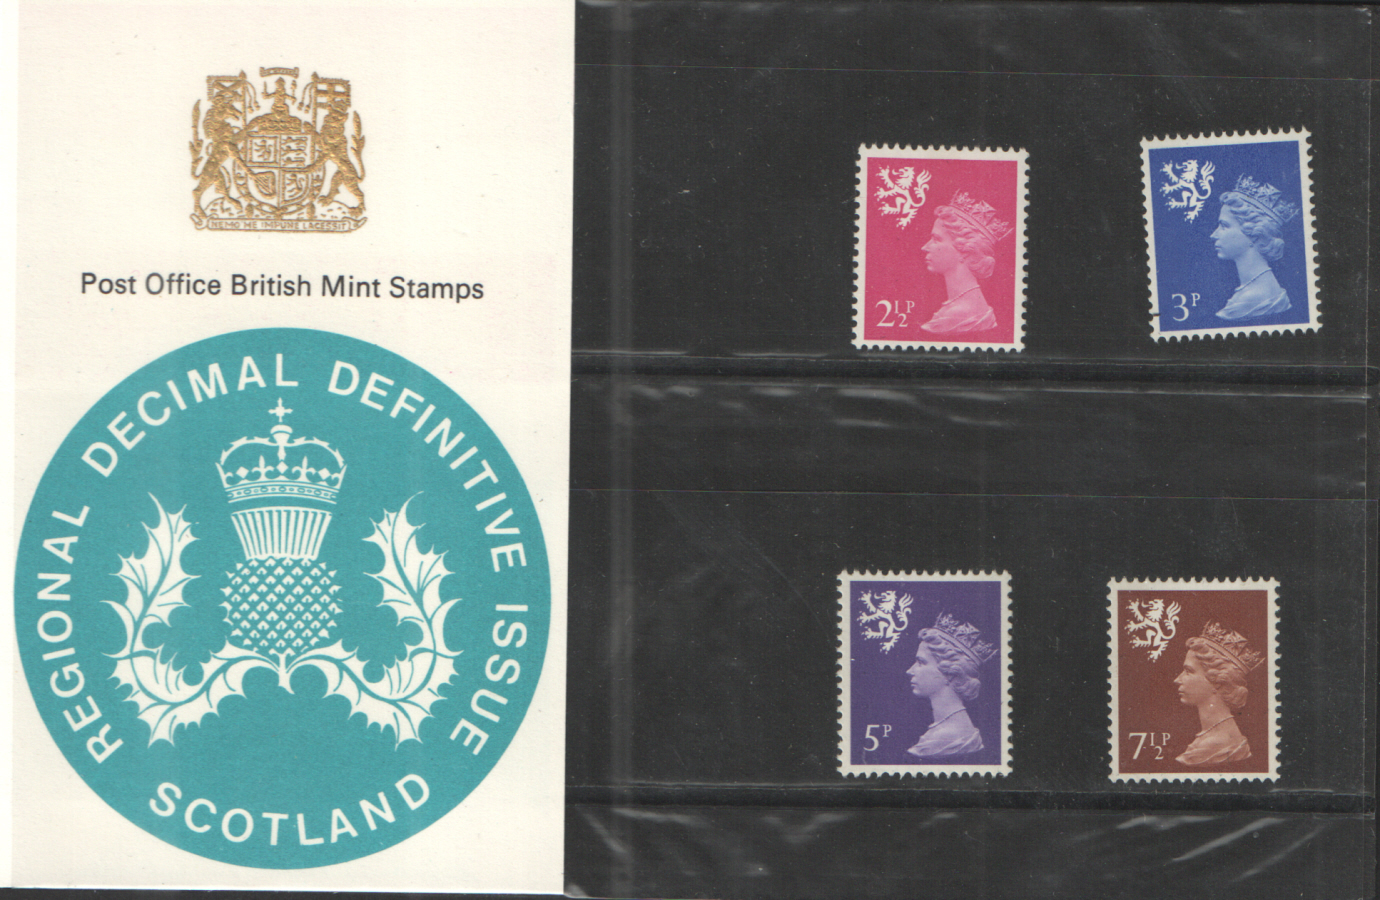 1971 Scotland Type B - Spur on Lion's hind leg Definitive Royal Mail Presentation Pack 27